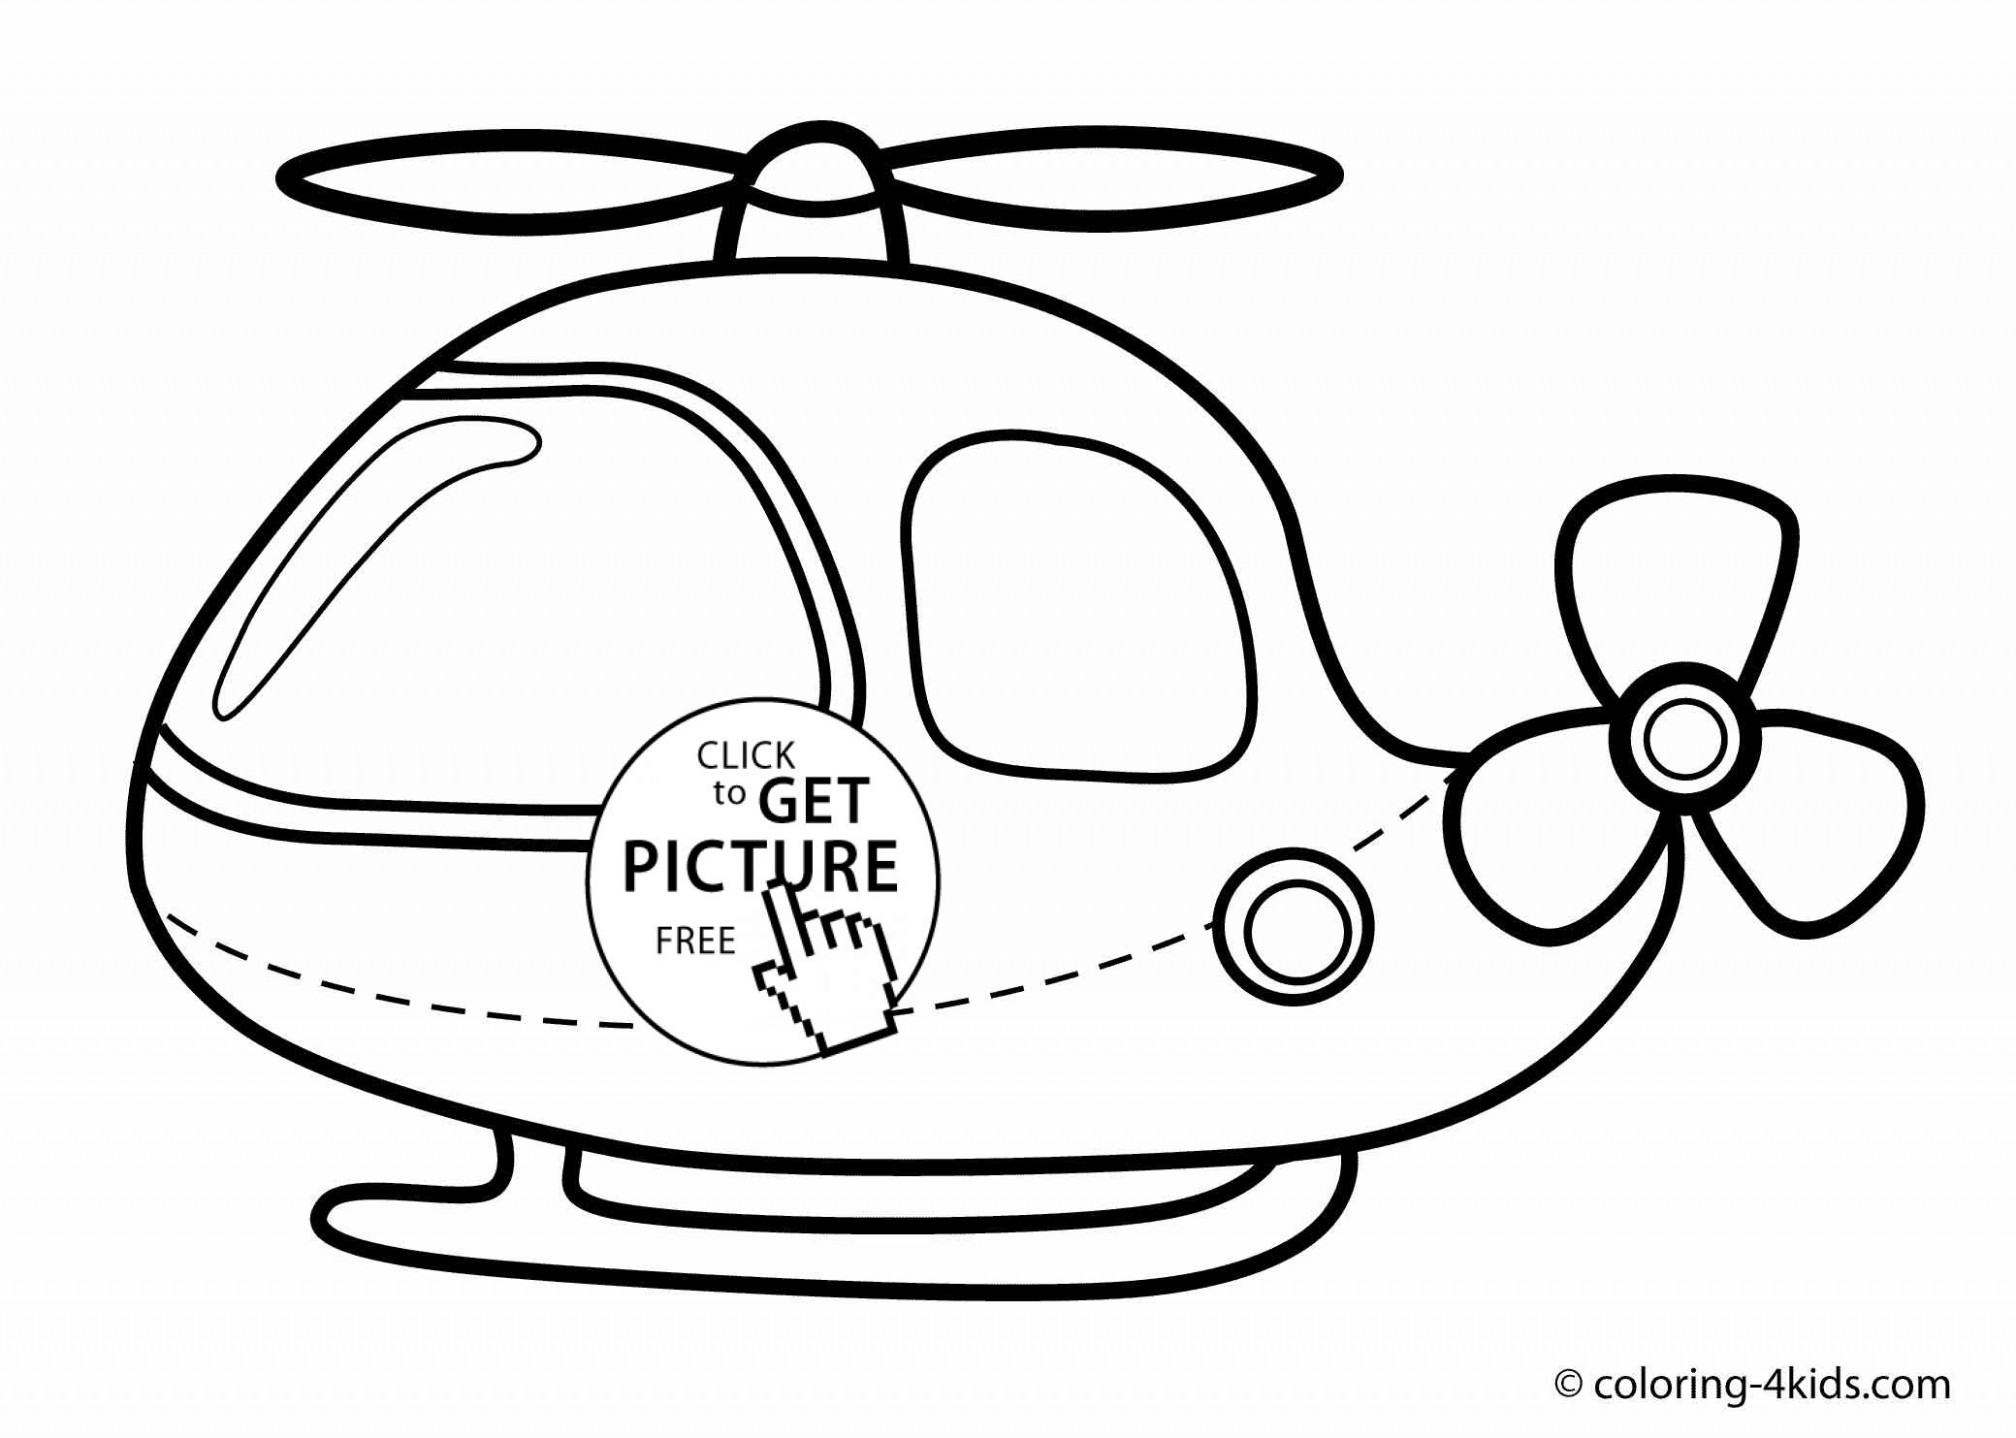 Helicopter coloring pages, helicopter coloring book for kids ..